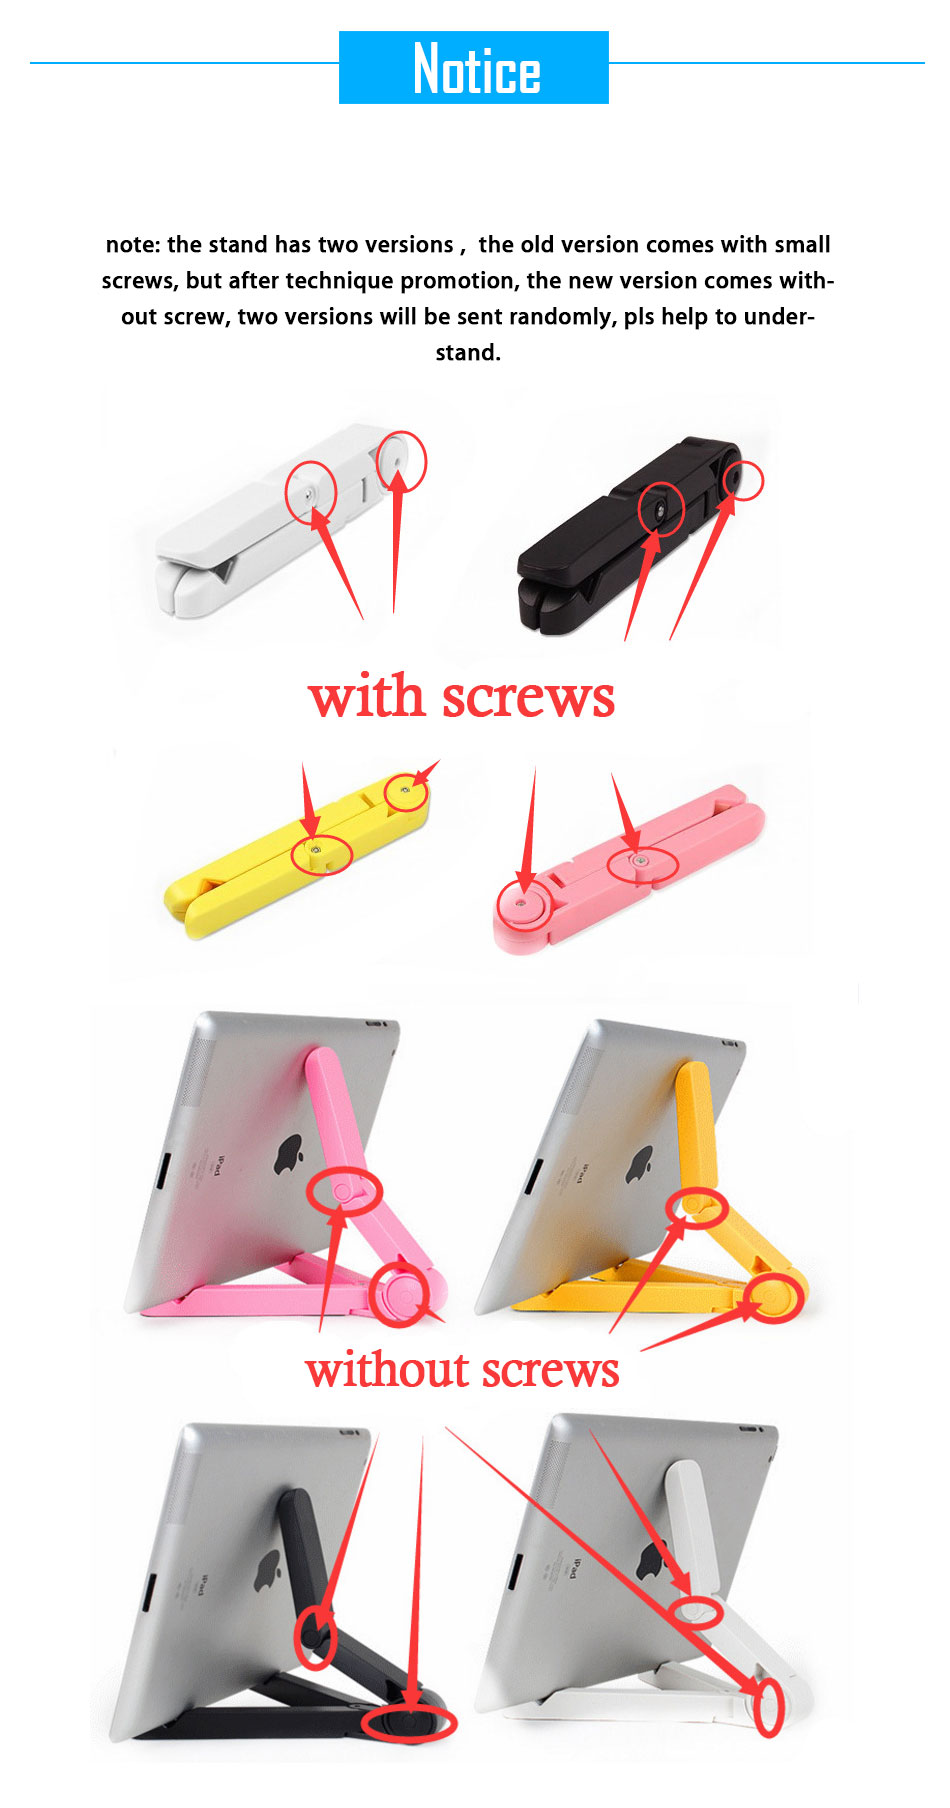 Mrs win Universal Foldable Phone Tablet Holder Desk Stand Adjustable Tripod Stability Support for iPhone iPad Pad Tablet Huawei 6